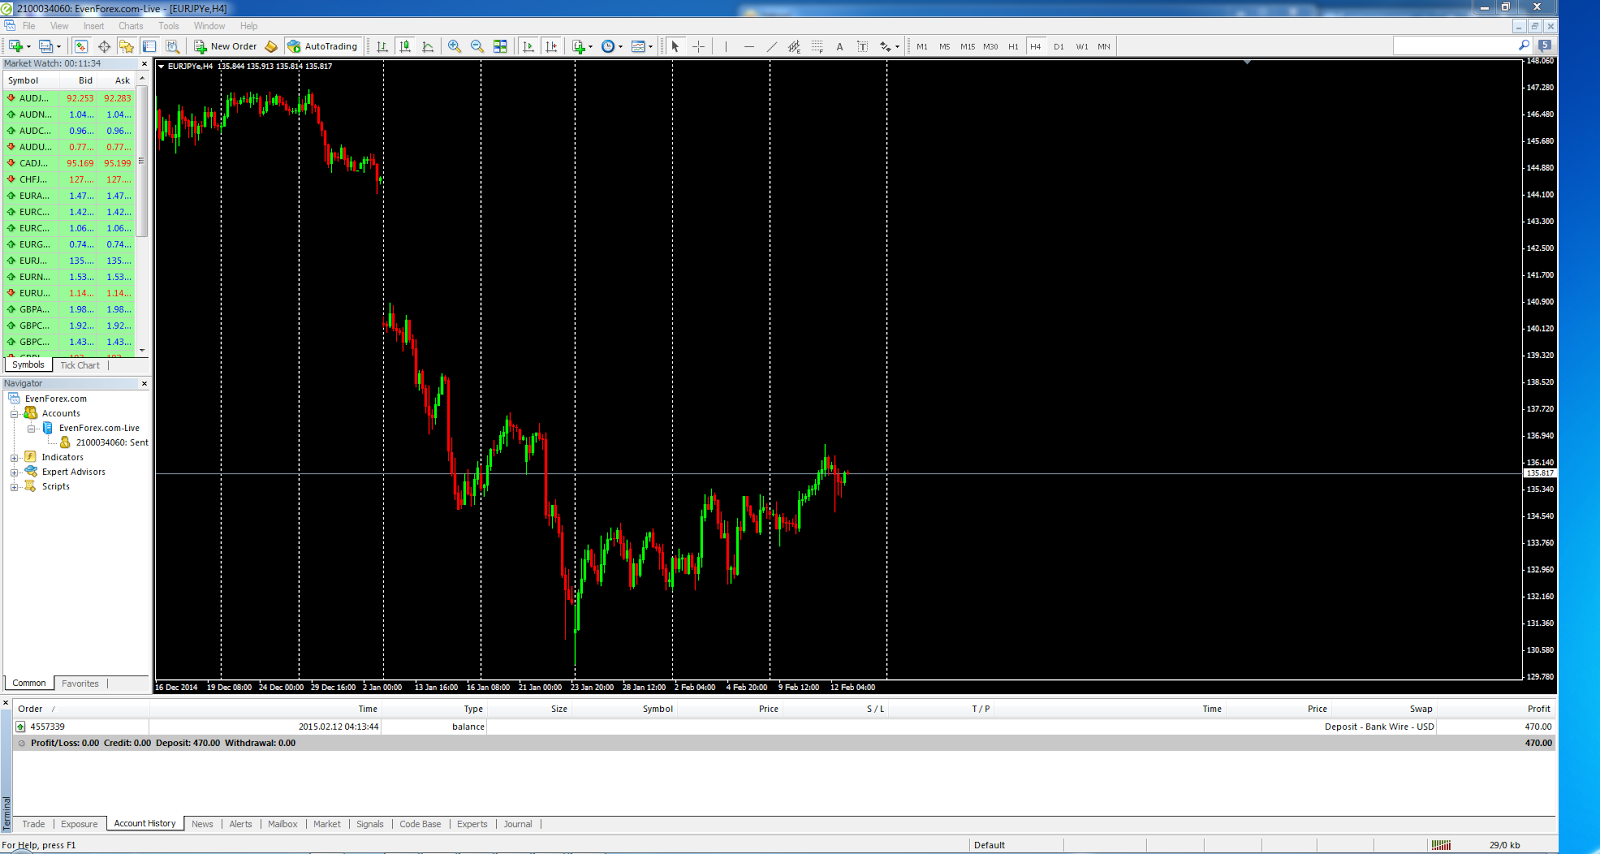 Best Forex Trading Platform,Trading Signals,Forex Investment,Forex Scalping,Forex Company